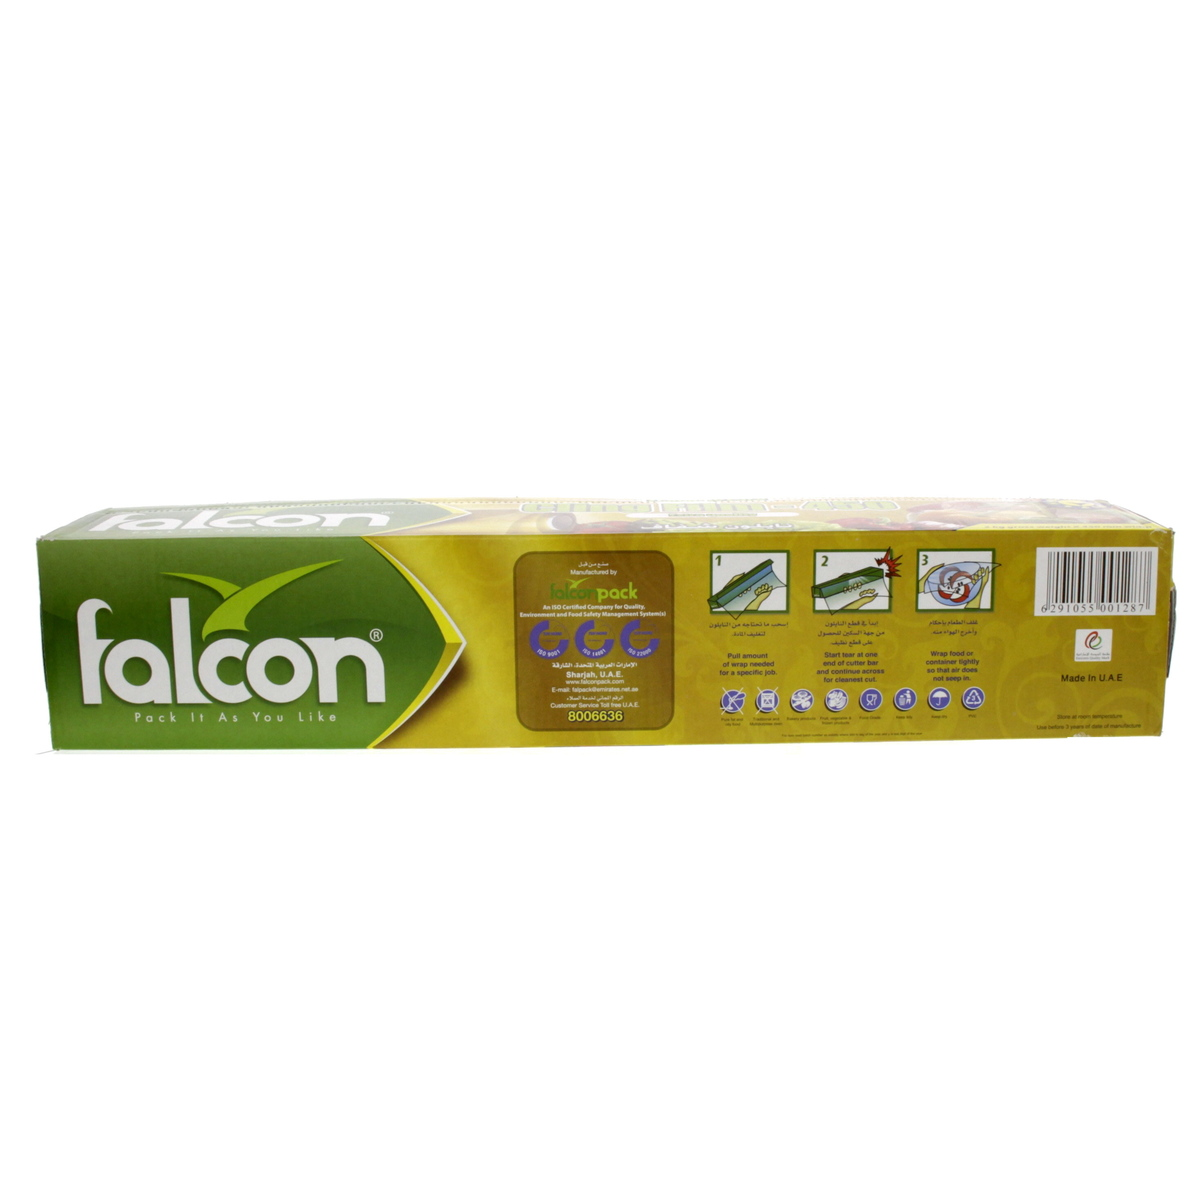 Buy Falcon Cling Film 2kgx450mm 1pc - Cling Film & Wrap